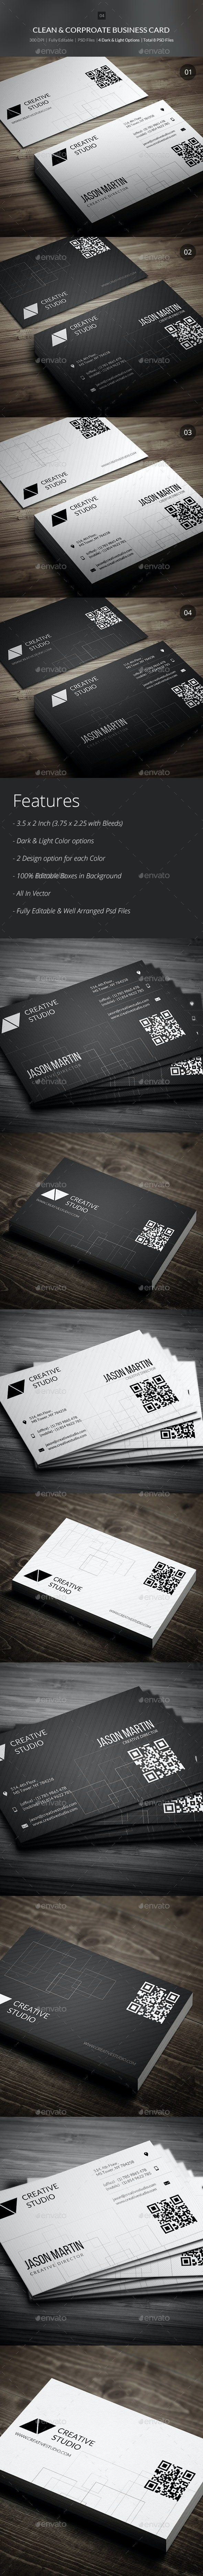 Clean & Corporate Business Cards - 04 - Corporate Business Cards